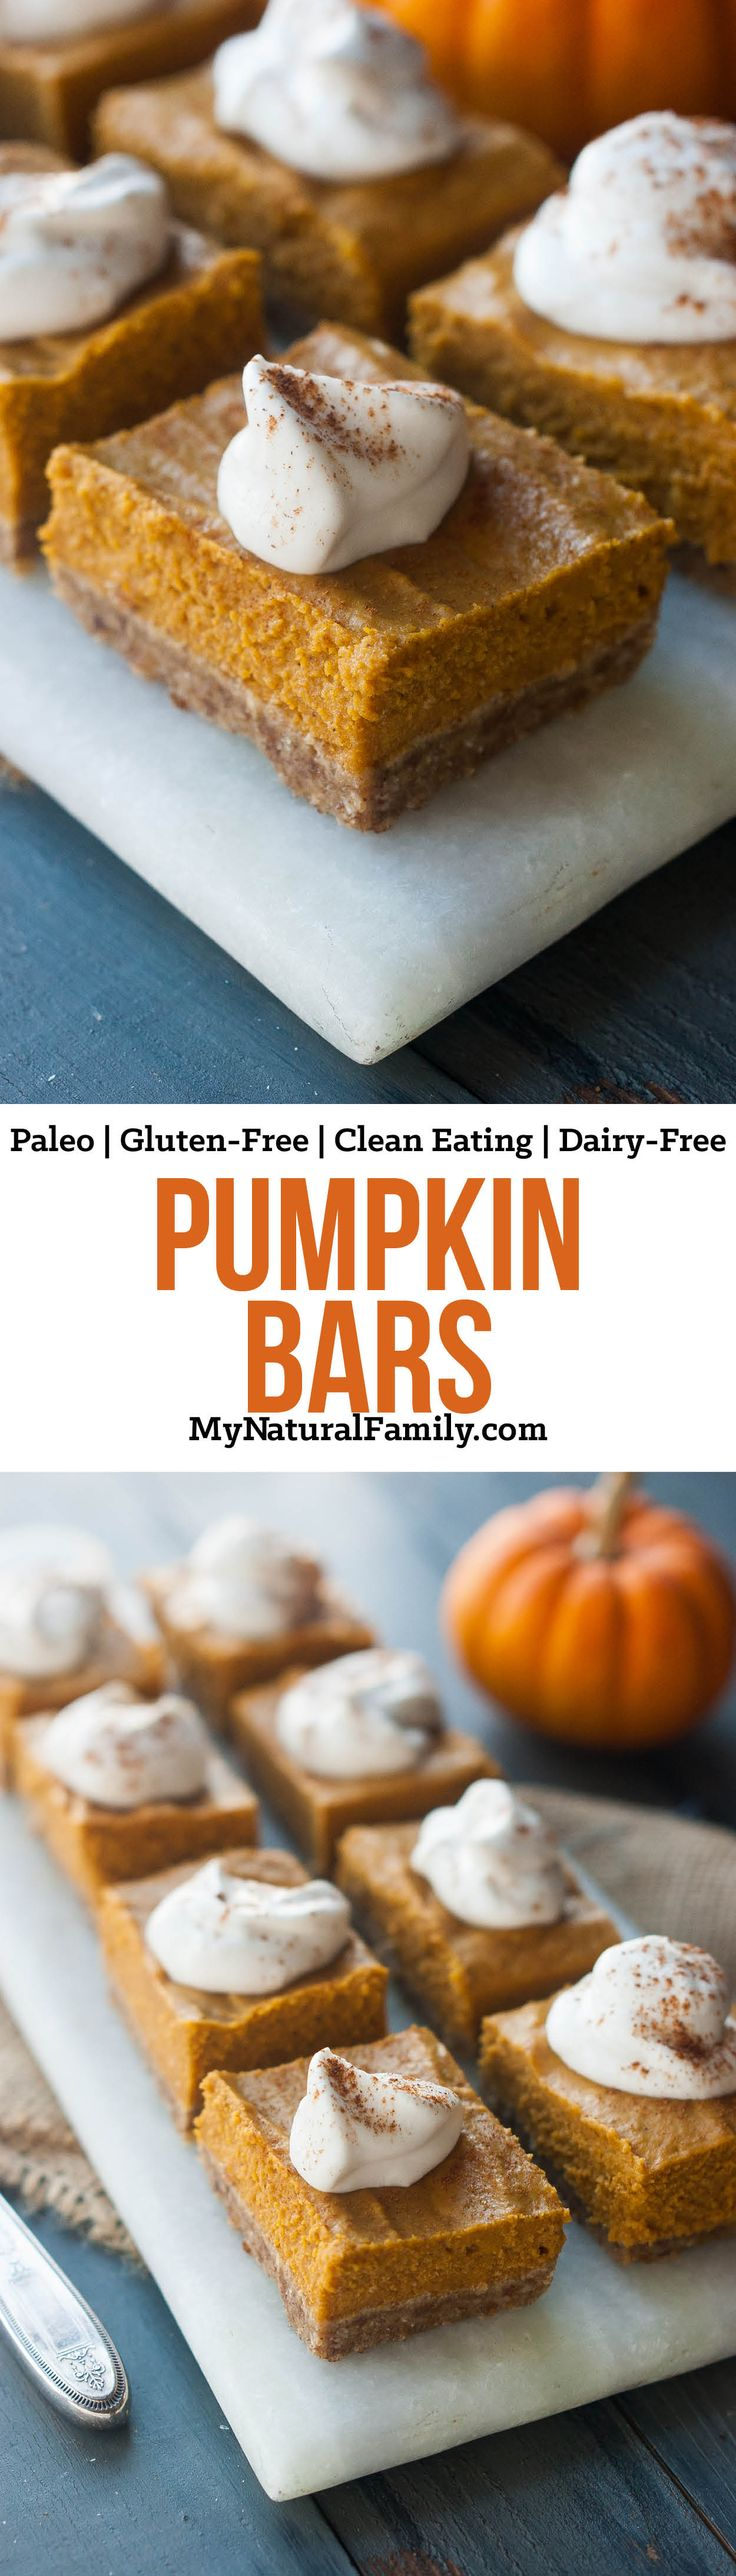 Pumpkin Bars Recipe {Paleo, Gluten-Free, Clean Eating, Dairy-Free} - I'm sick of not eating what everyone else is having, so I'm going to make these and share with everyone.